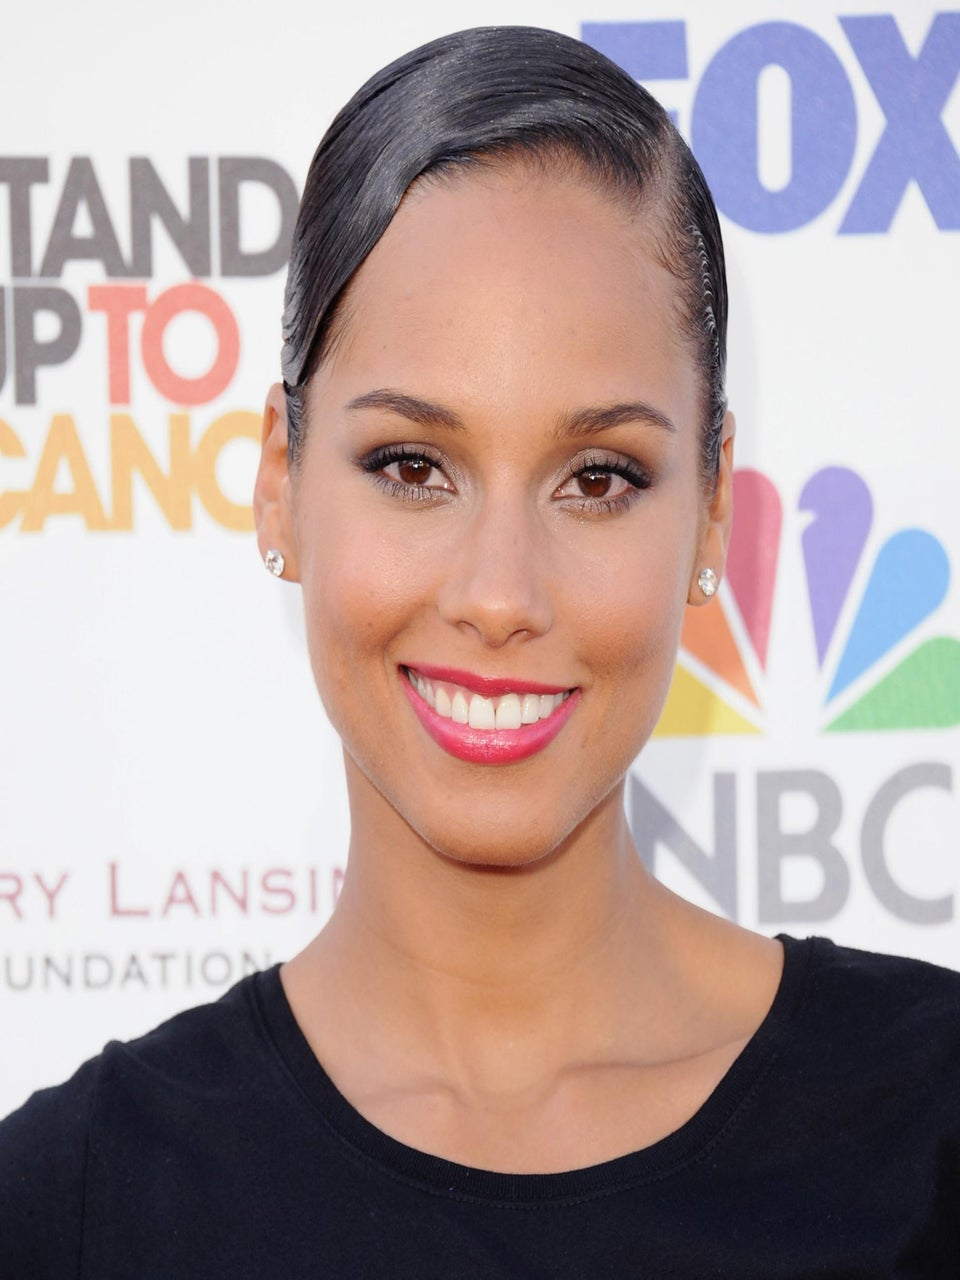 Must-See: Alicia Keys Performs 'Girl on Fire' on 'Vh1 Storytellers'